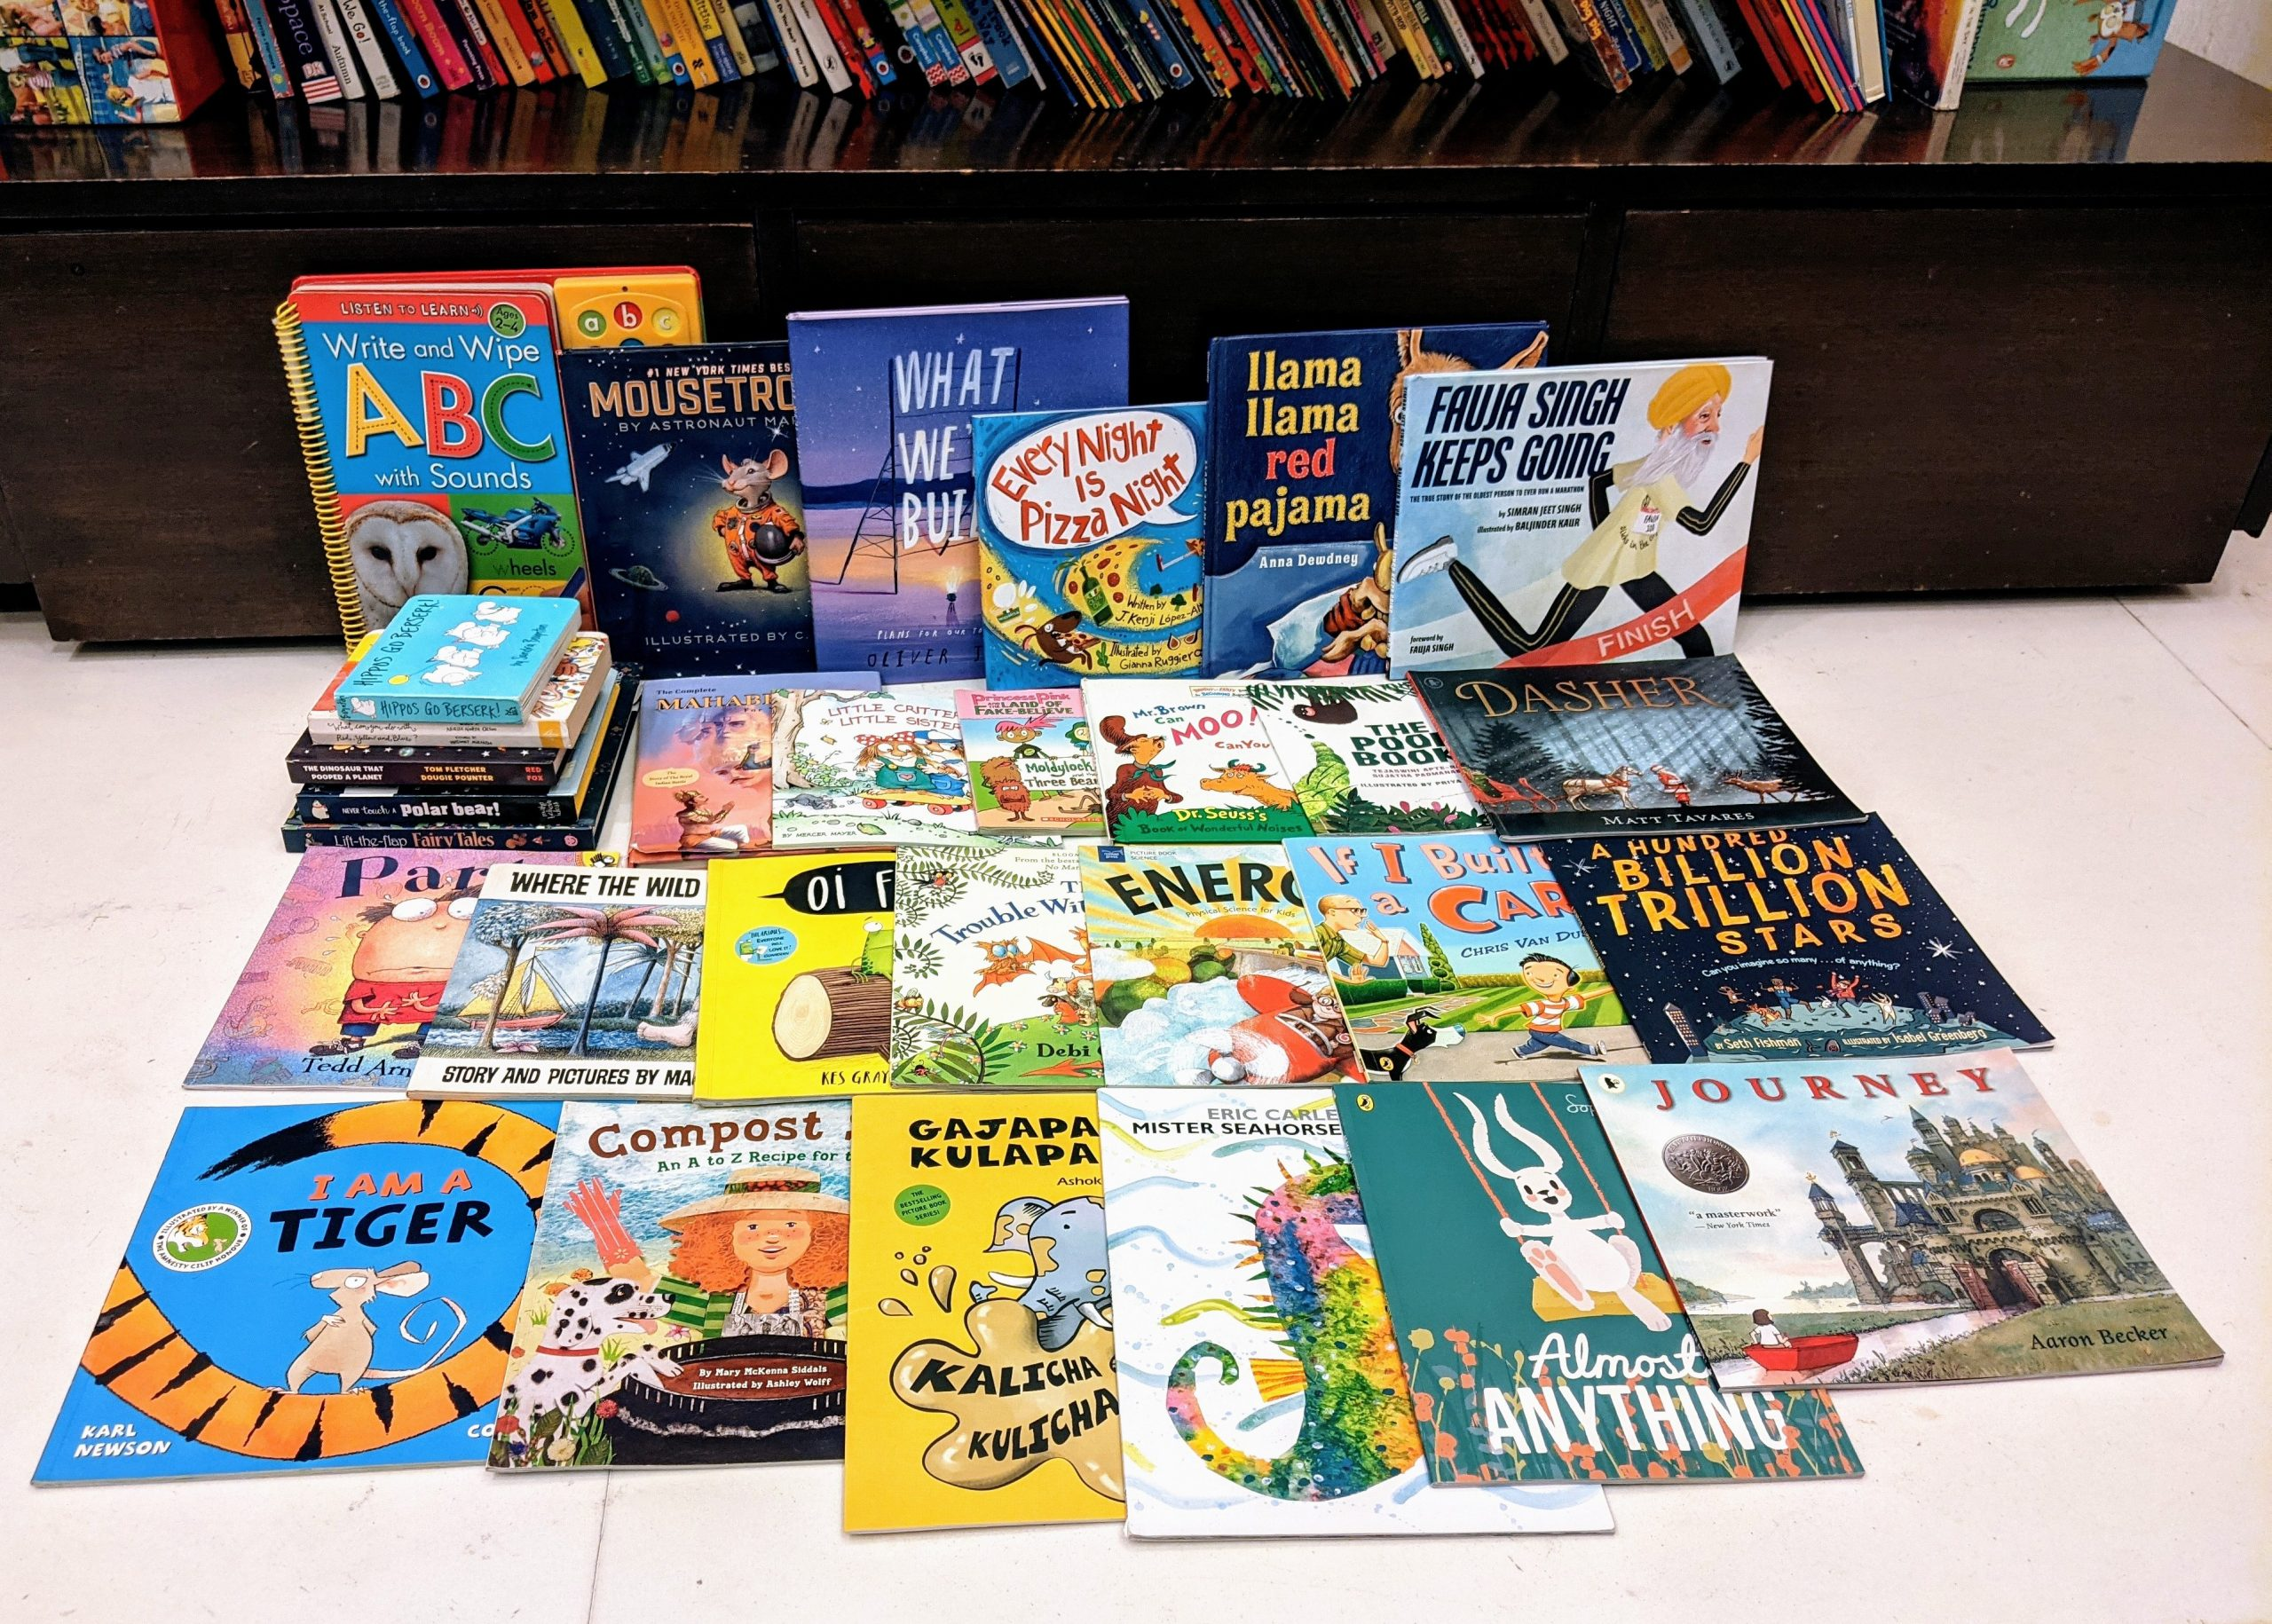 R's Top Thirty! Books for 3-6 year olds #kbcBookBingoJr